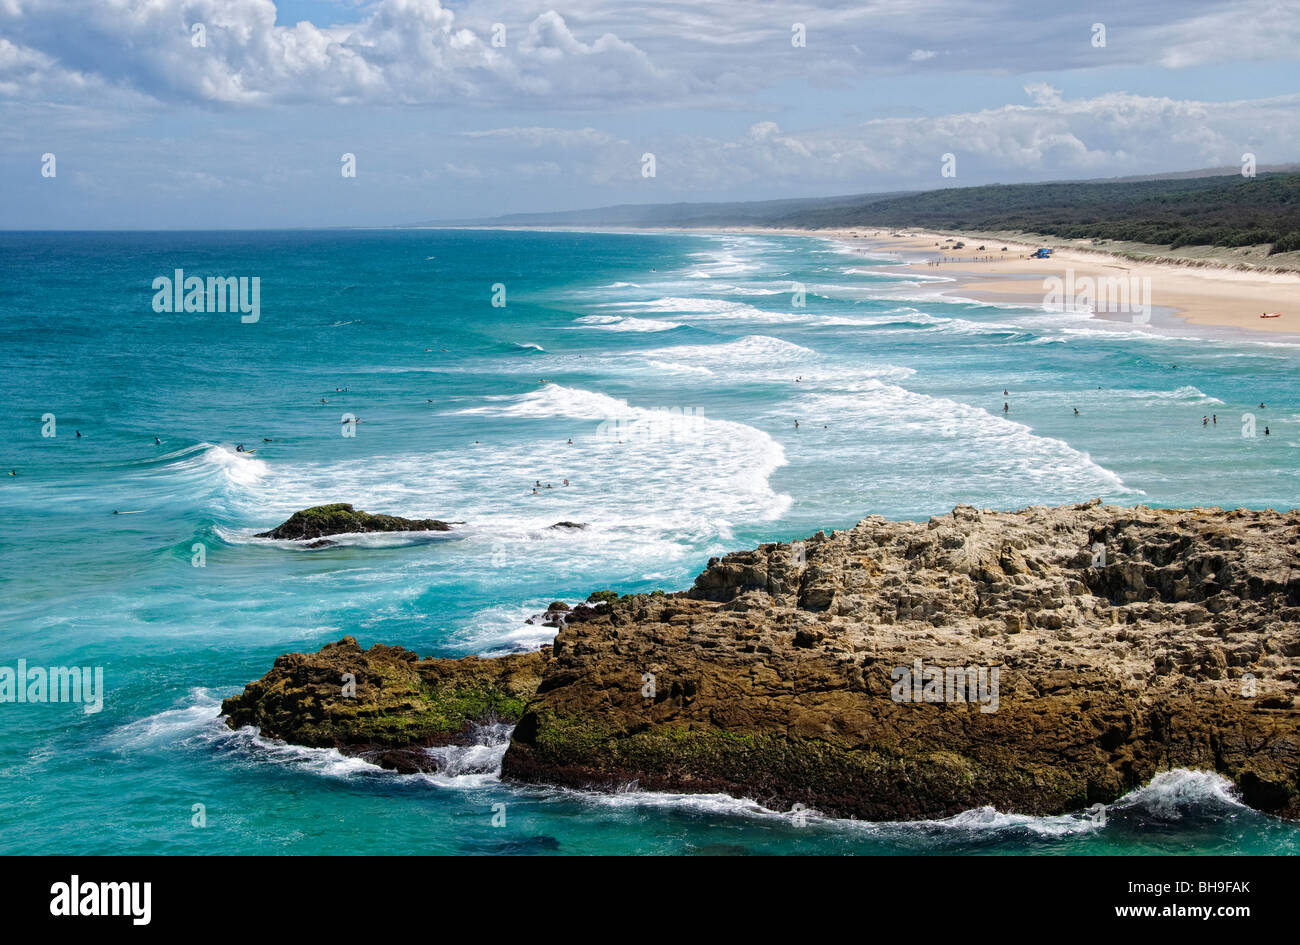 Looking south along the beach at Point Lookout on Stradbroke Island, Queensland's most easterly point. North - Stock Image